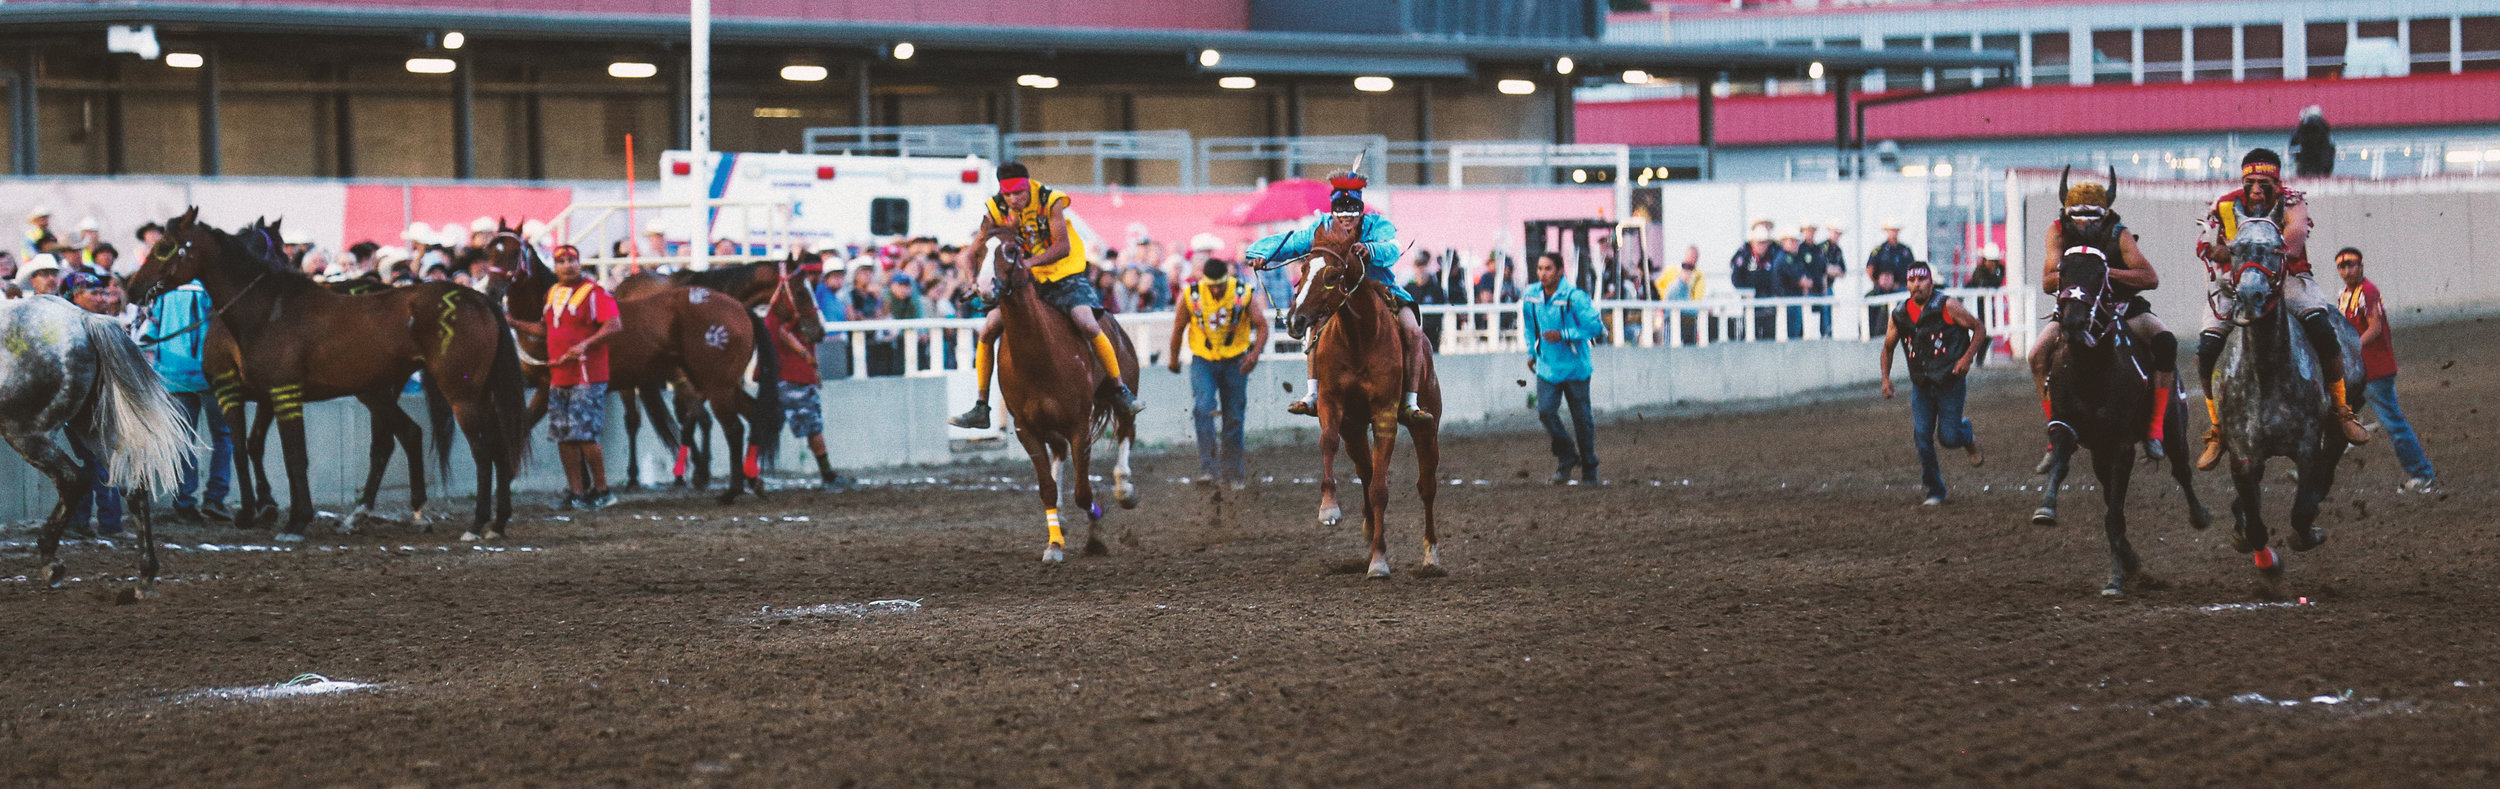 The_first_ever_Indian_Relay_at_the_Calgary_Stampede_Calgary2017.jpg